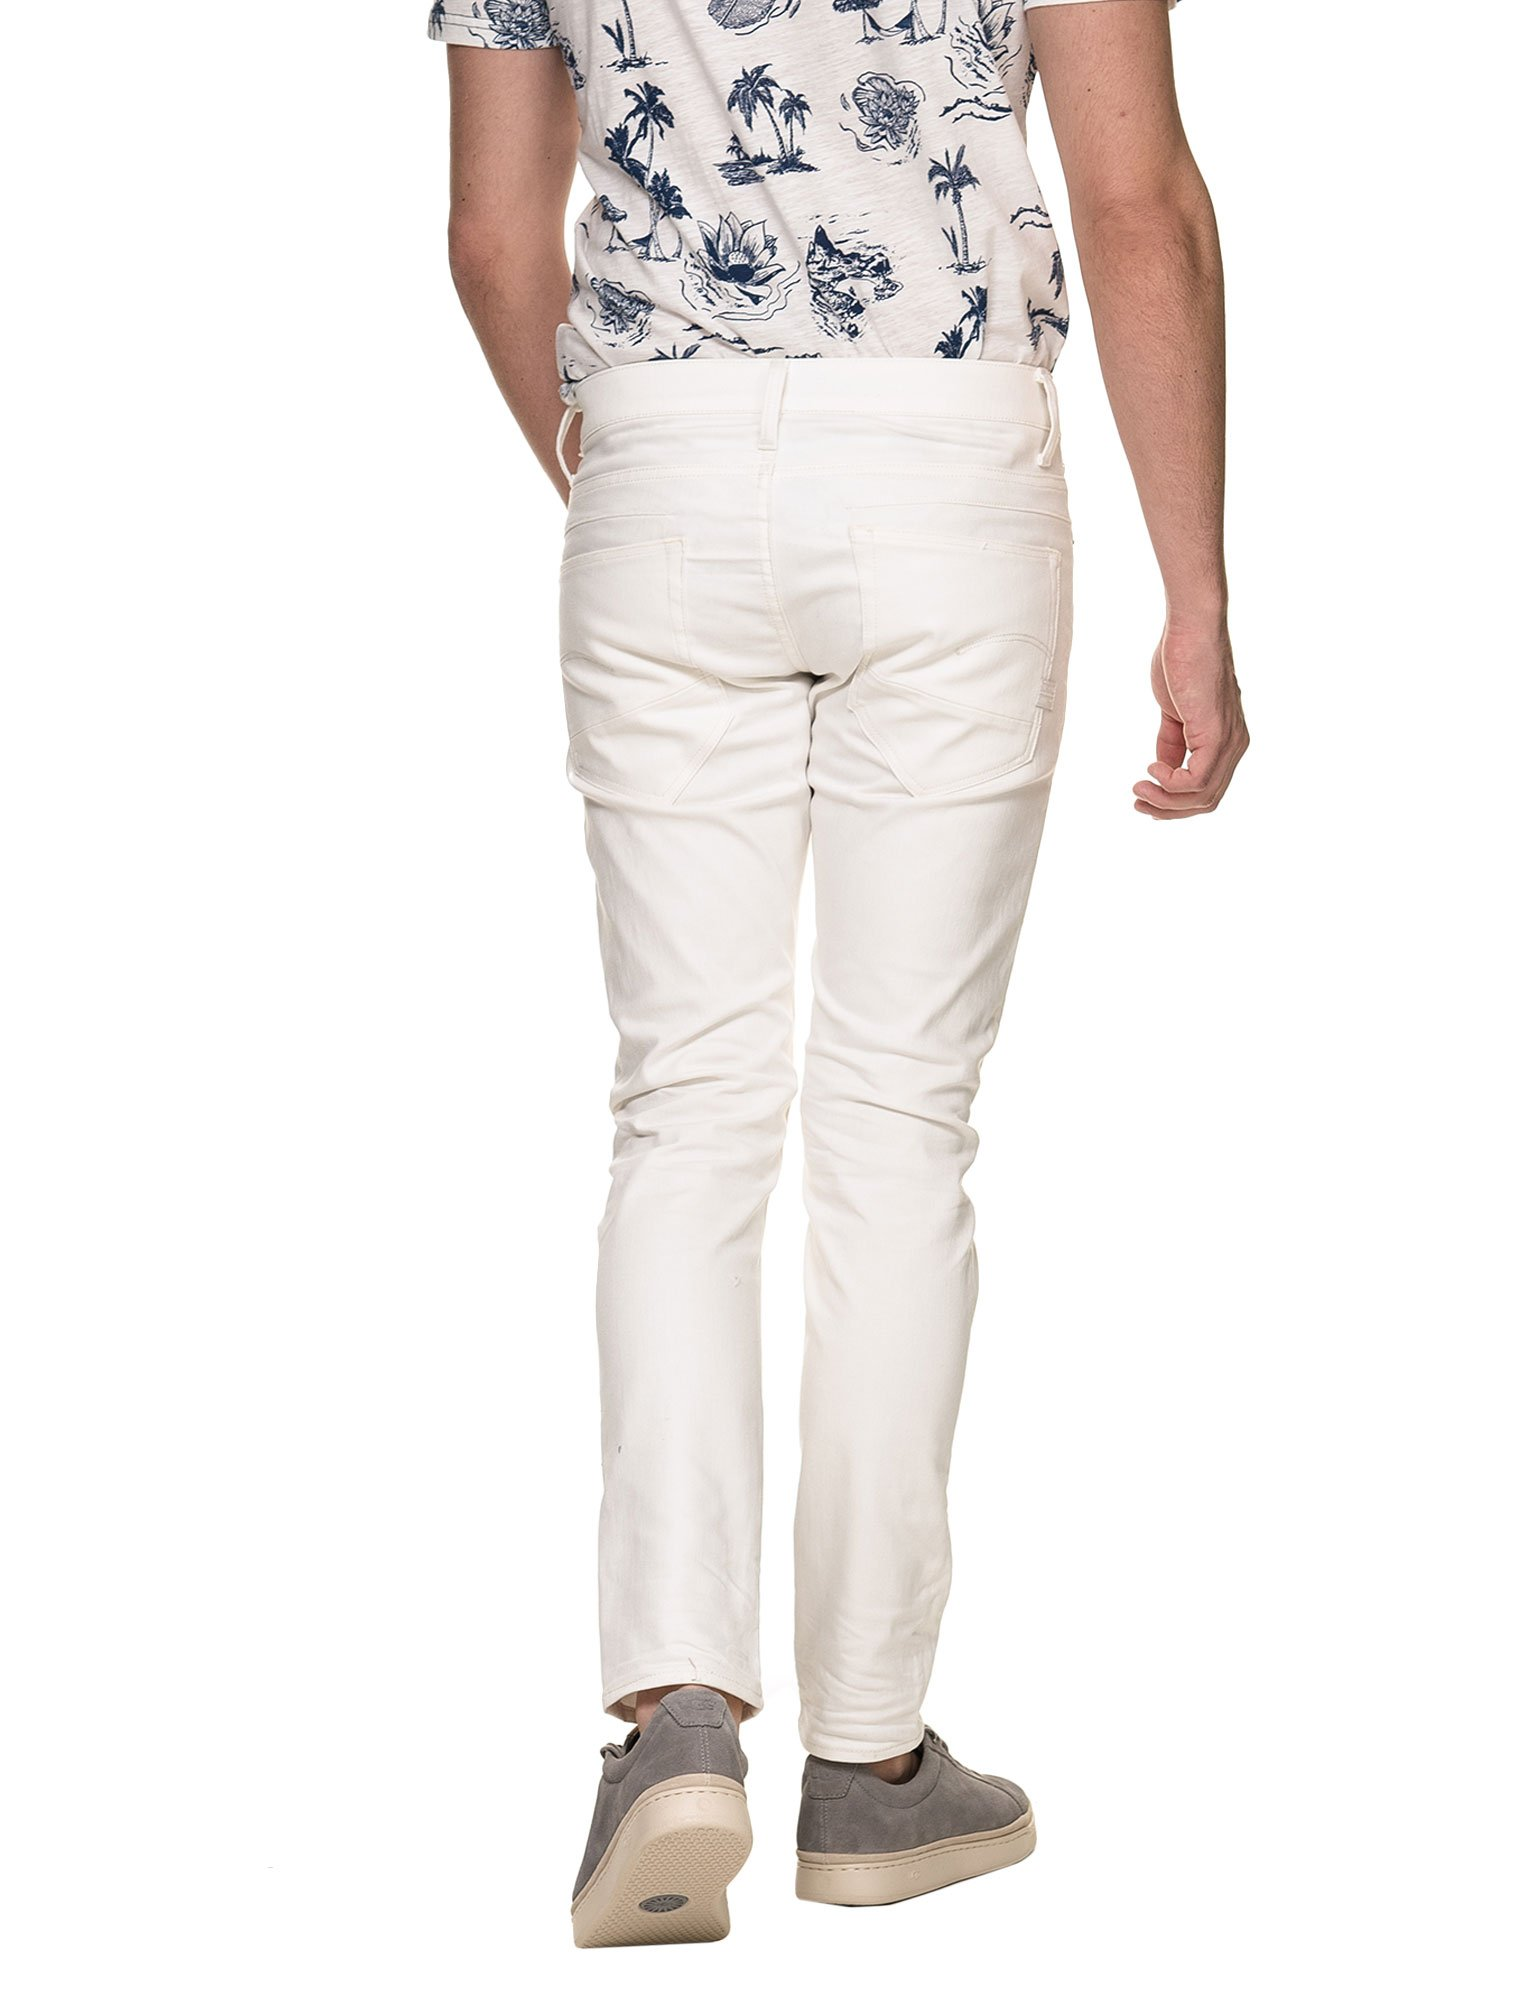 G-STAR Men's D-STAQ 5-Pkt Slim Pants White in Size 30W 32L by G-STAR (Image #2)